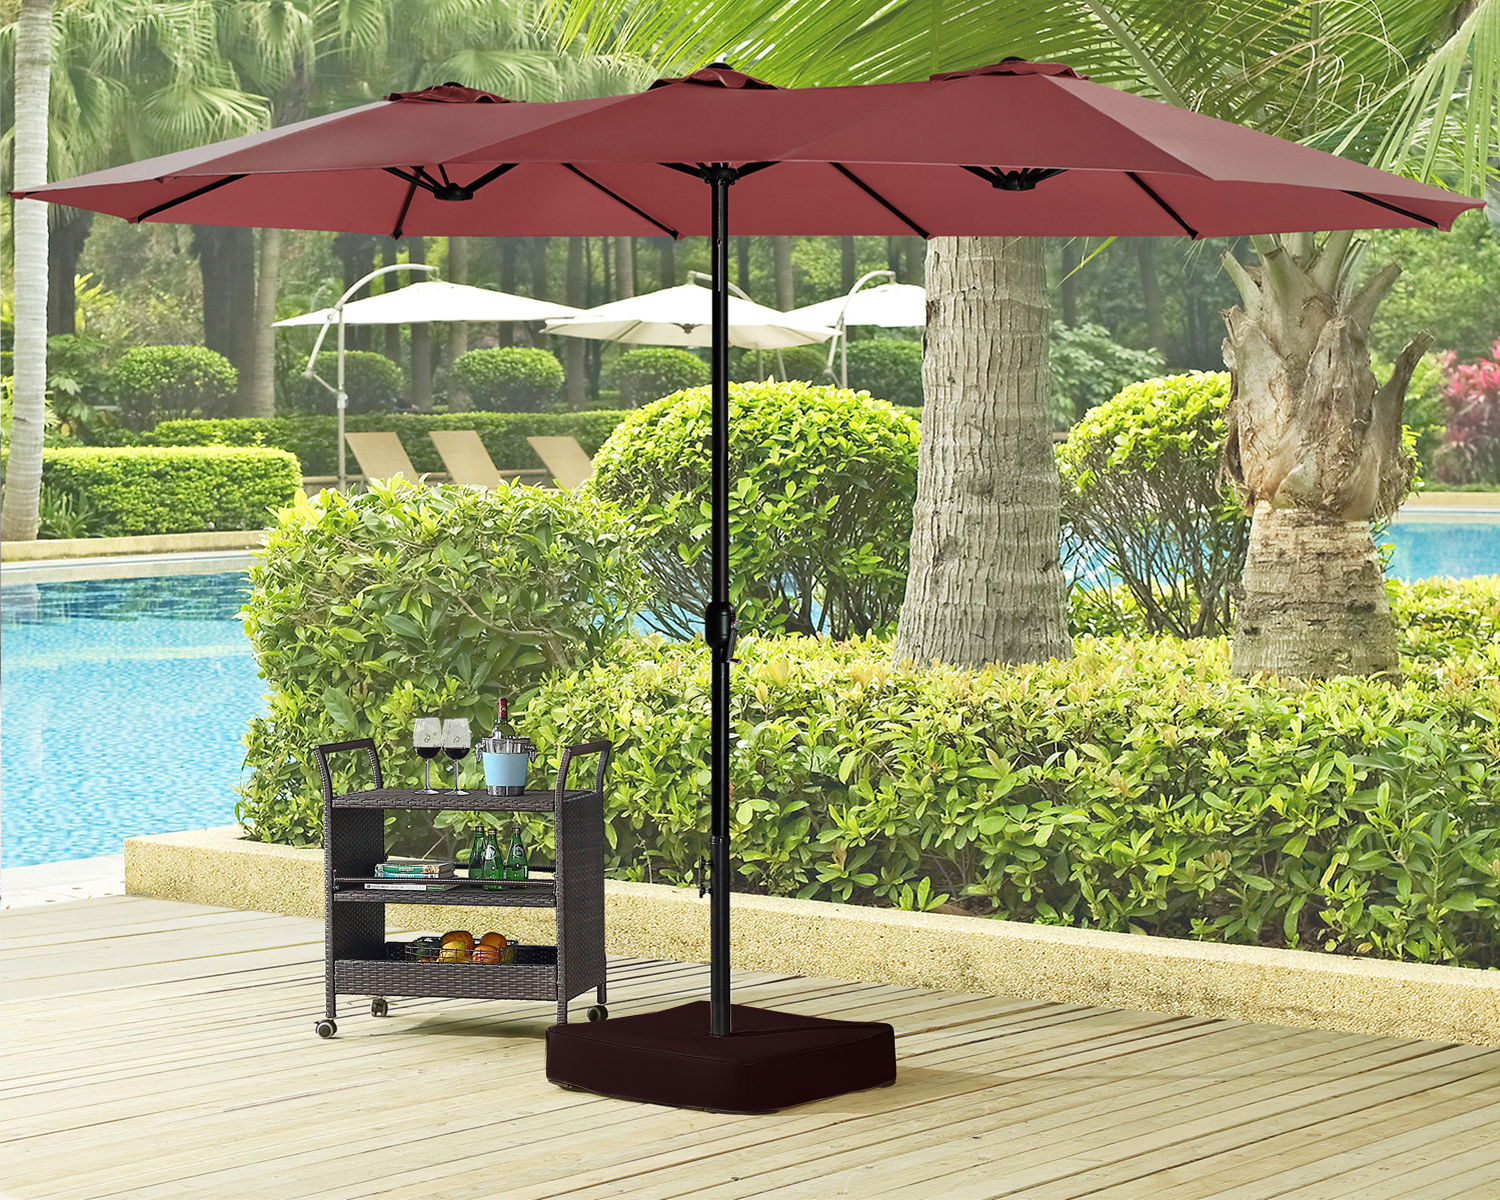 [%15 Ft Double Sided Outdoor Market Umbrella 12 Ribs, Crank System, 100%  Polyester, Base Included (Red) Within Widely Used Zadie Twin Rectangular Market Umbrellas|Zadie Twin Rectangular Market Umbrellas For Most Current 15 Ft Double Sided Outdoor Market Umbrella 12 Ribs, Crank System, 100%  Polyester, Base Included (Red)|Most Recent Zadie Twin Rectangular Market Umbrellas In 15 Ft Double Sided Outdoor Market Umbrella 12 Ribs, Crank System, 100%  Polyester, Base Included (Red)|Favorite 15 Ft Double Sided Outdoor Market Umbrella 12 Ribs, Crank System, 100%  Polyester, Base Included (Red) With Regard To Zadie Twin Rectangular Market Umbrellas%] (View 2 of 20)